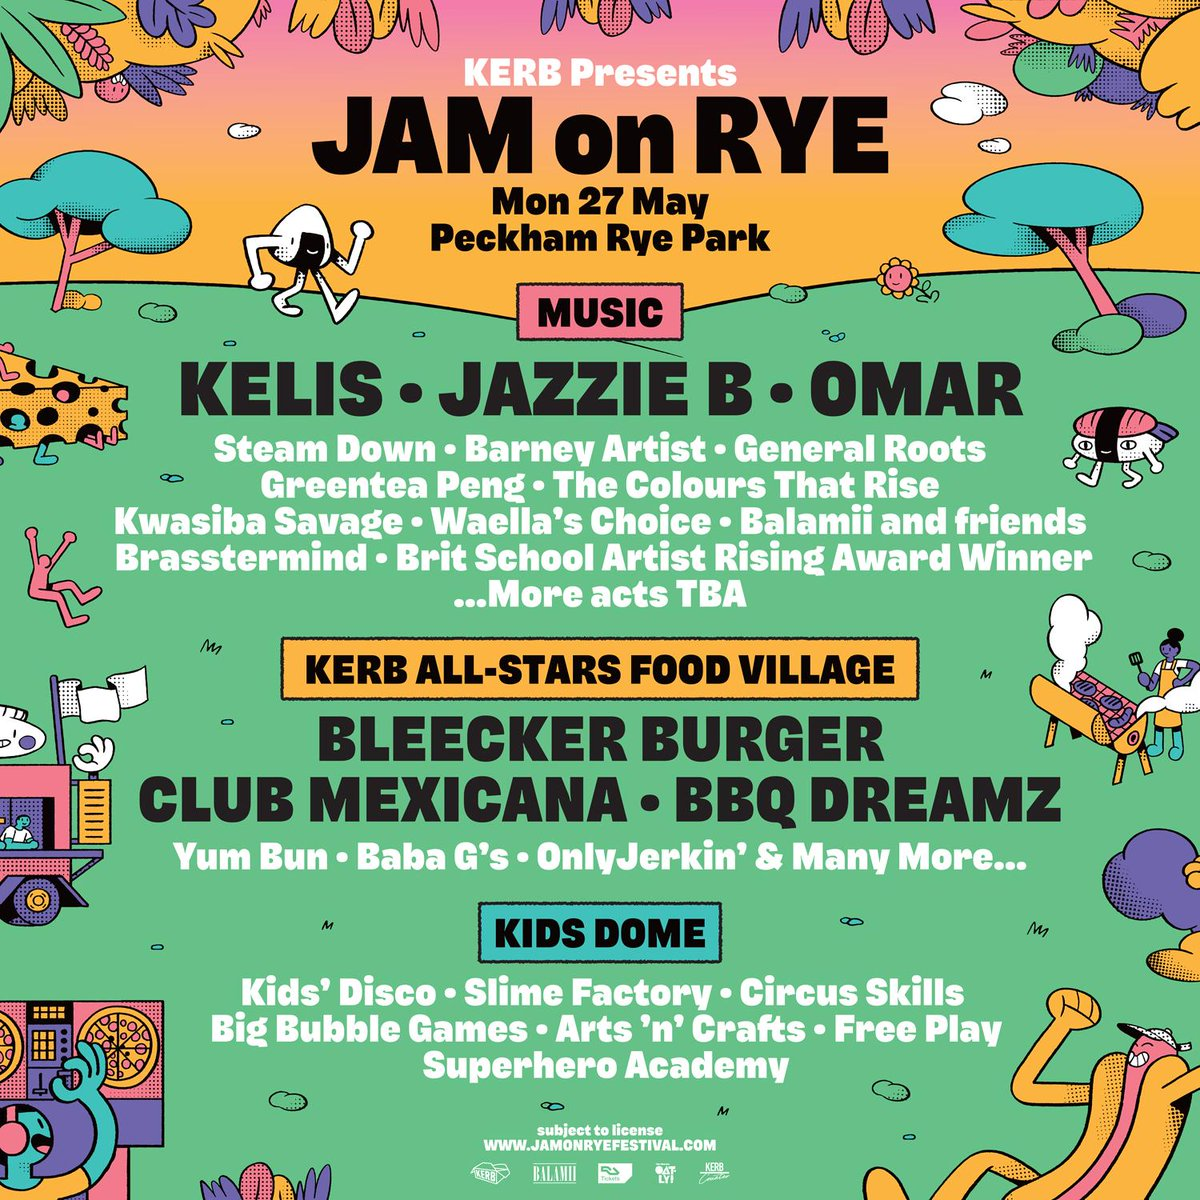 Always love going back to the UK! I'll be there May 27 for Jam on Rye!! https://t.co/7sMlrugQyd